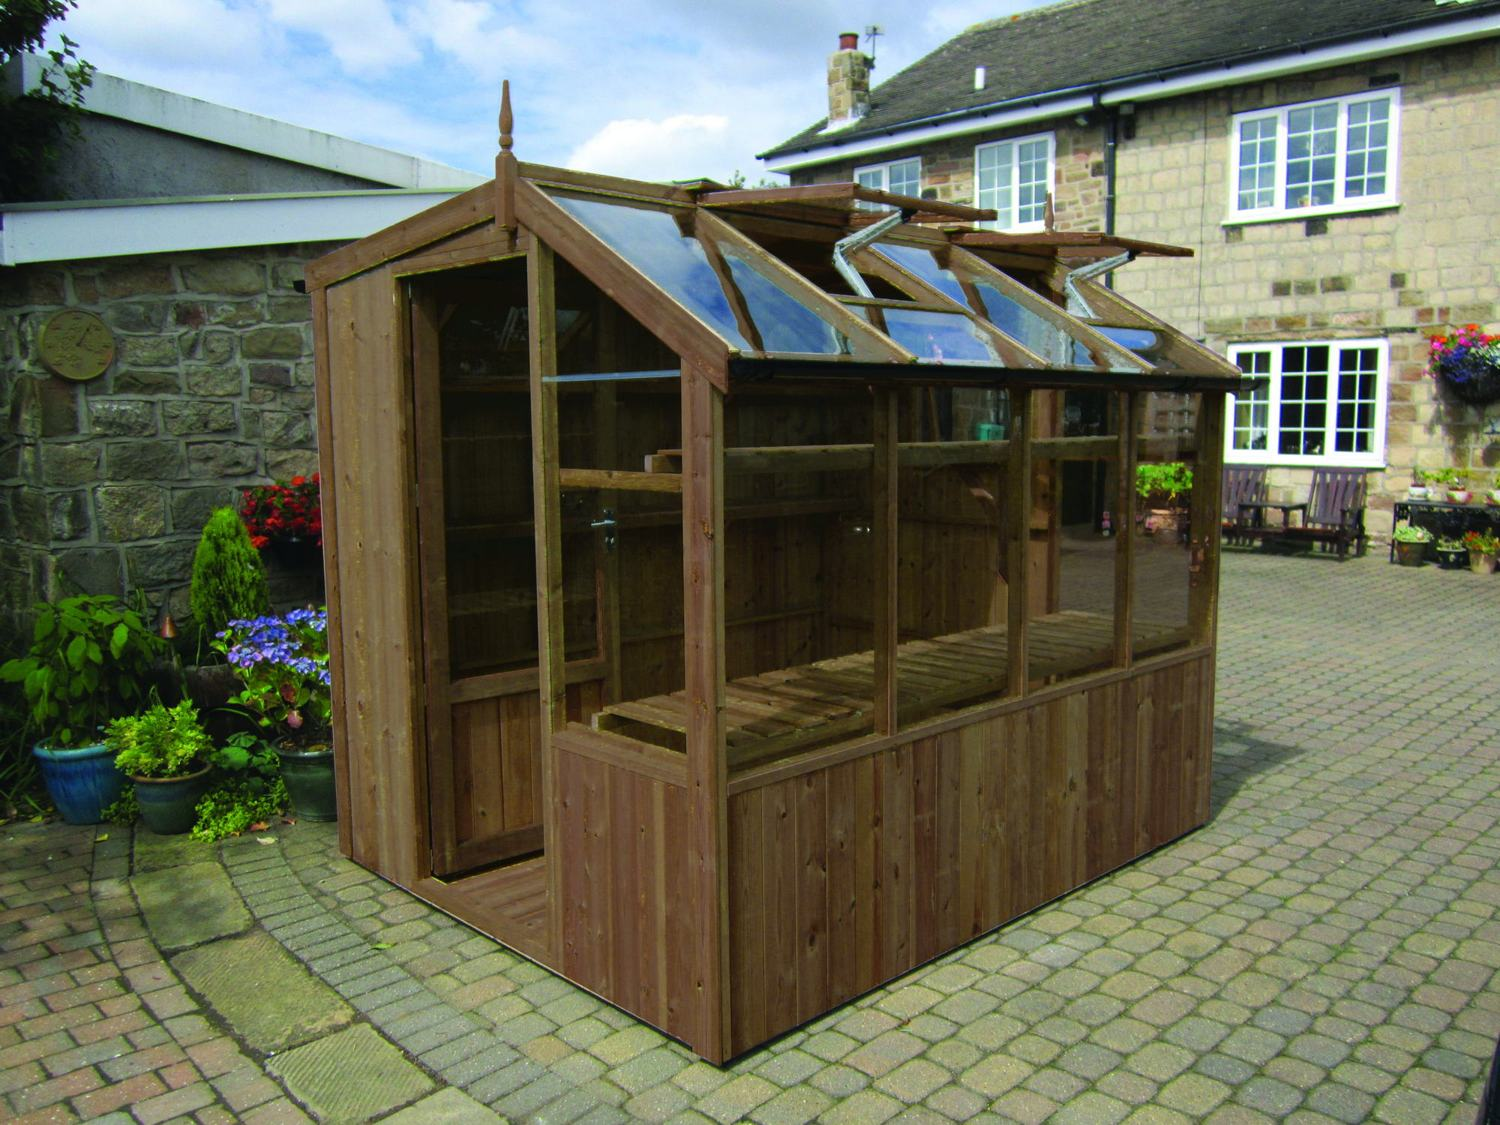 Swallow jay 6x6 wooden potting shed greenhouse stores Green house sheds